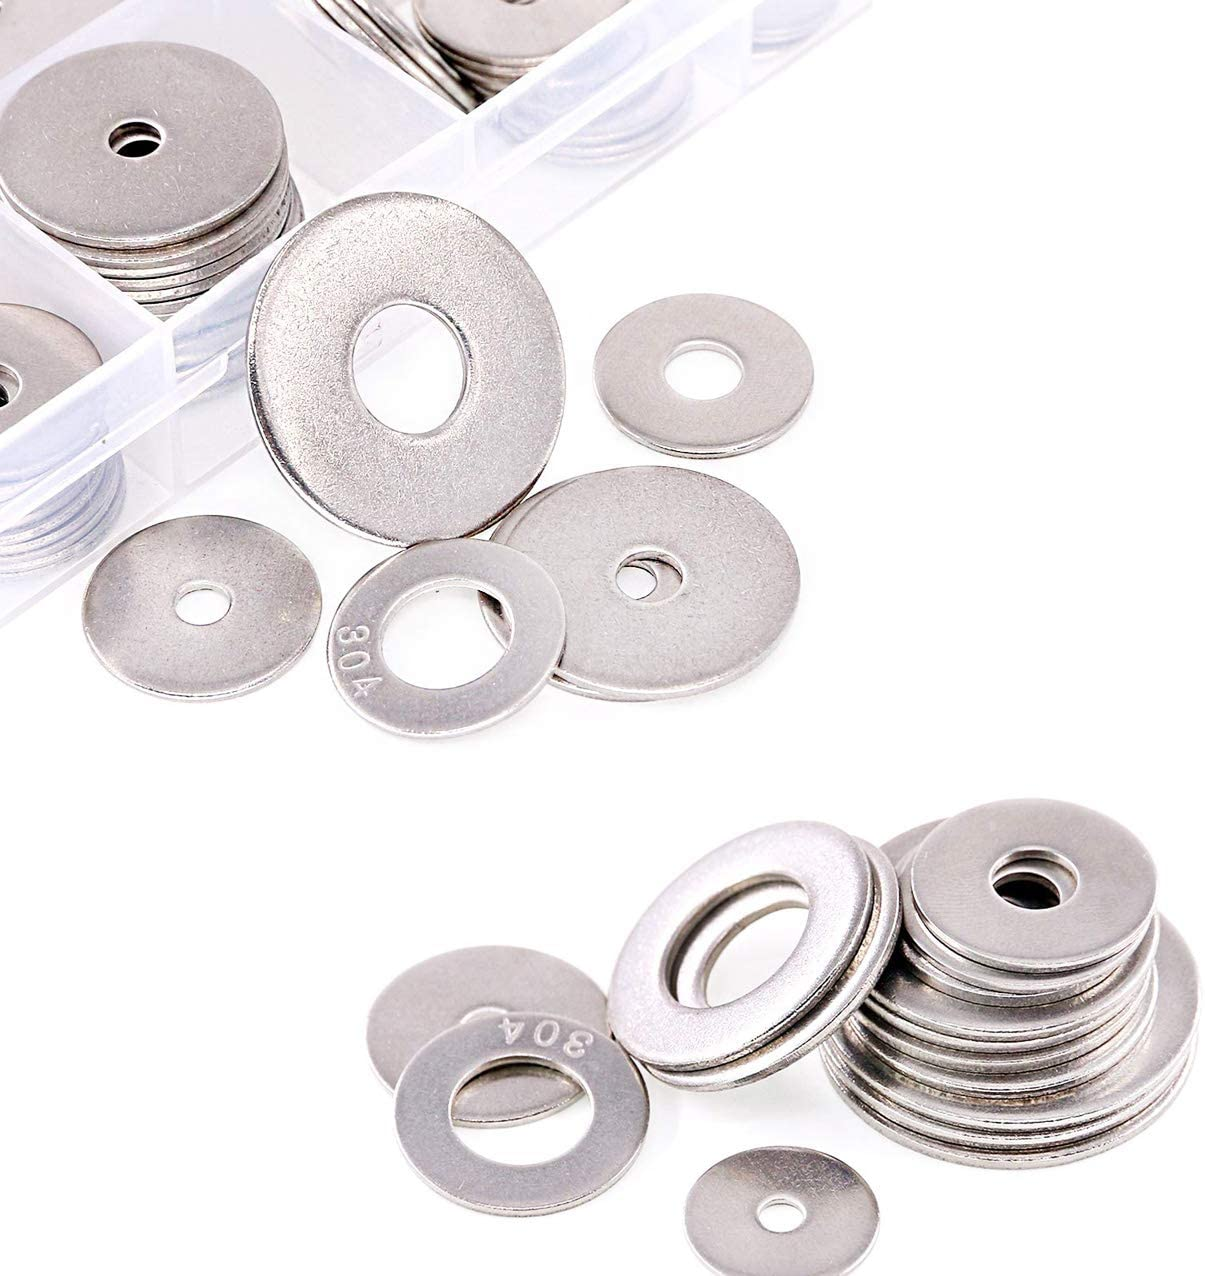 200 pcs 15 Sizes 304 Stainless Steel Large Penny Fender Flat Washers Assortment Kit,7 Different Types for Home,Automotive and Shop Use-M3 M4 M5 M6 M8 M10 M12